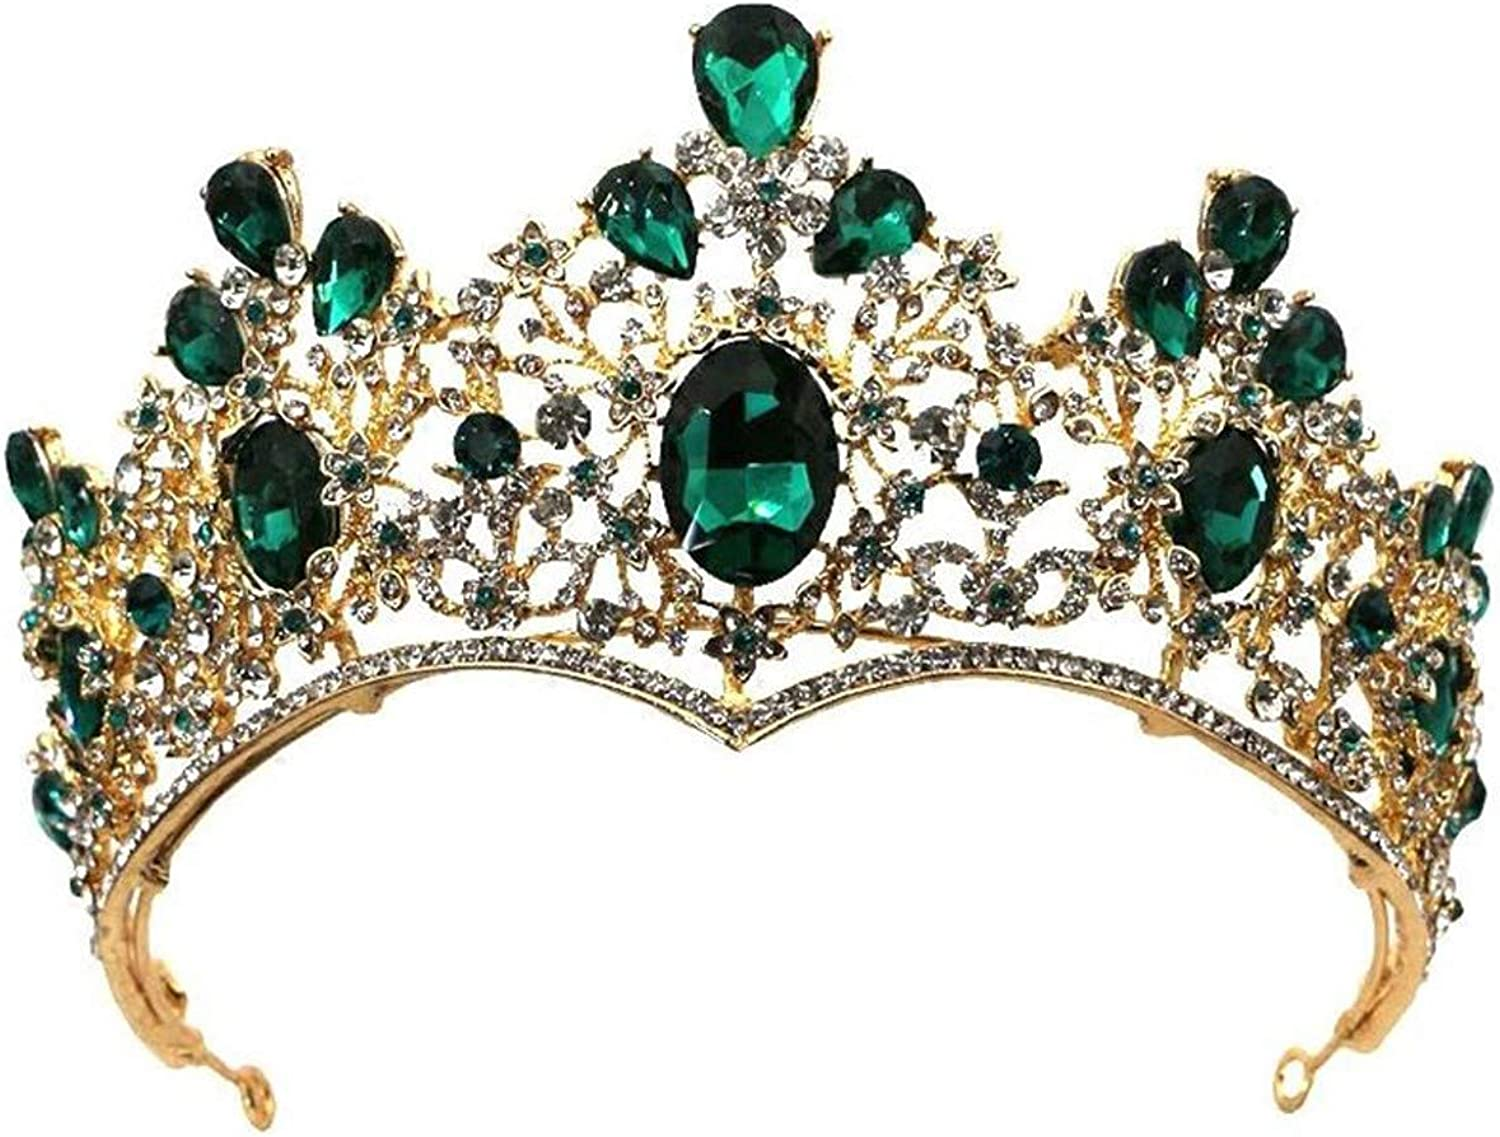 KUNQ Gift ear clip The Bride Is Married To The Green Jewel Crown The Queen Of The Air The Wedding Dress The Accessories.